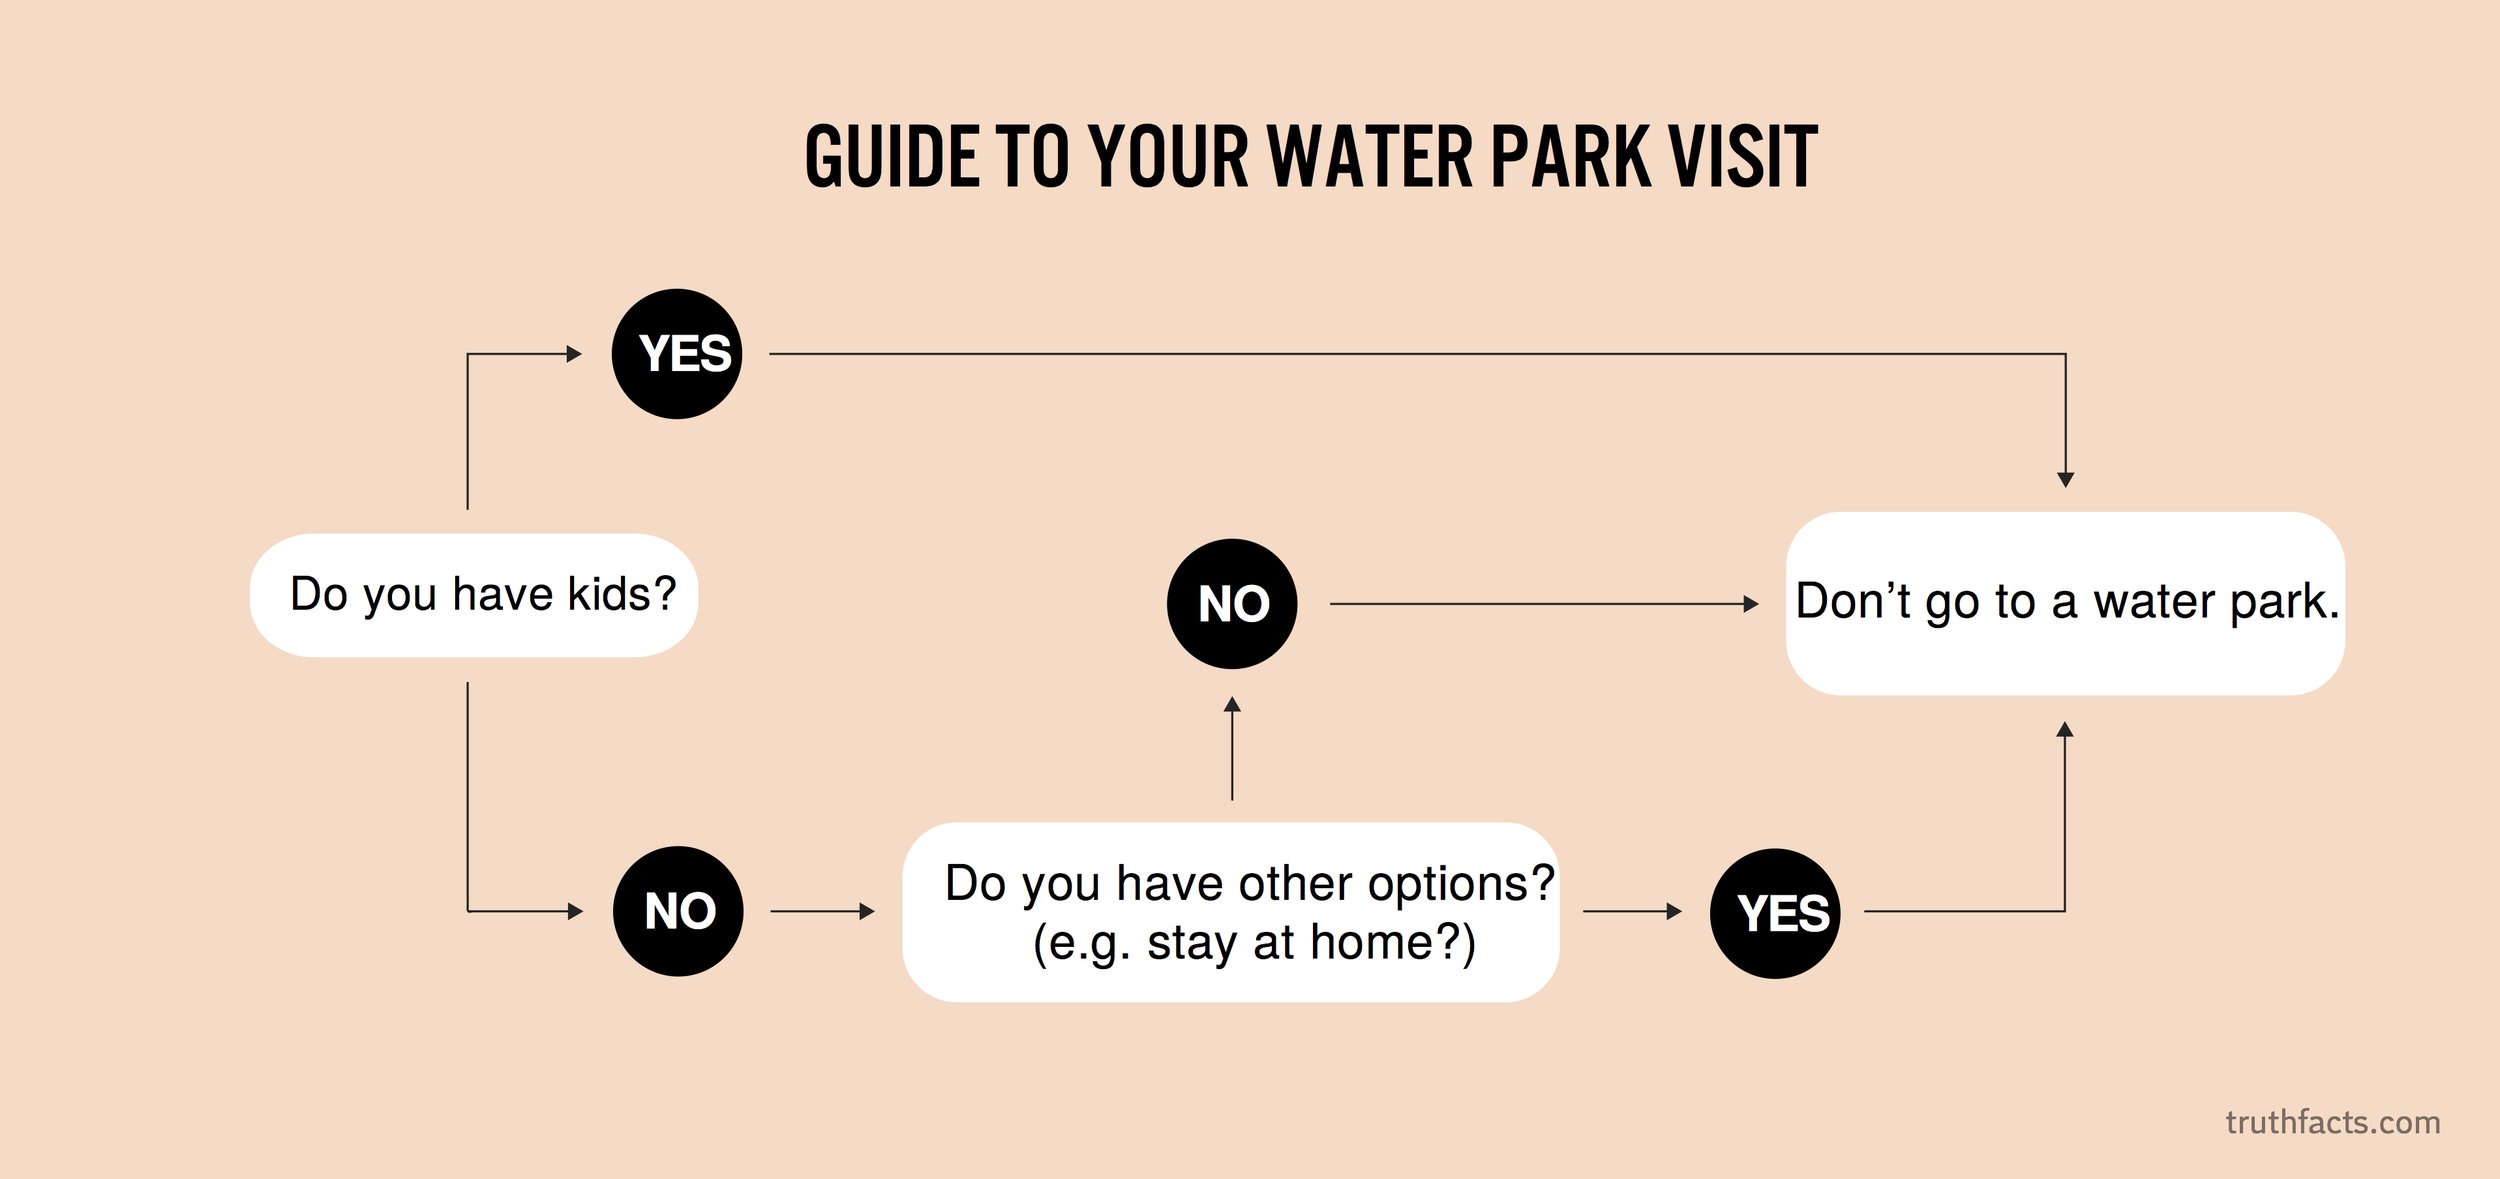 Guide to your water park visit